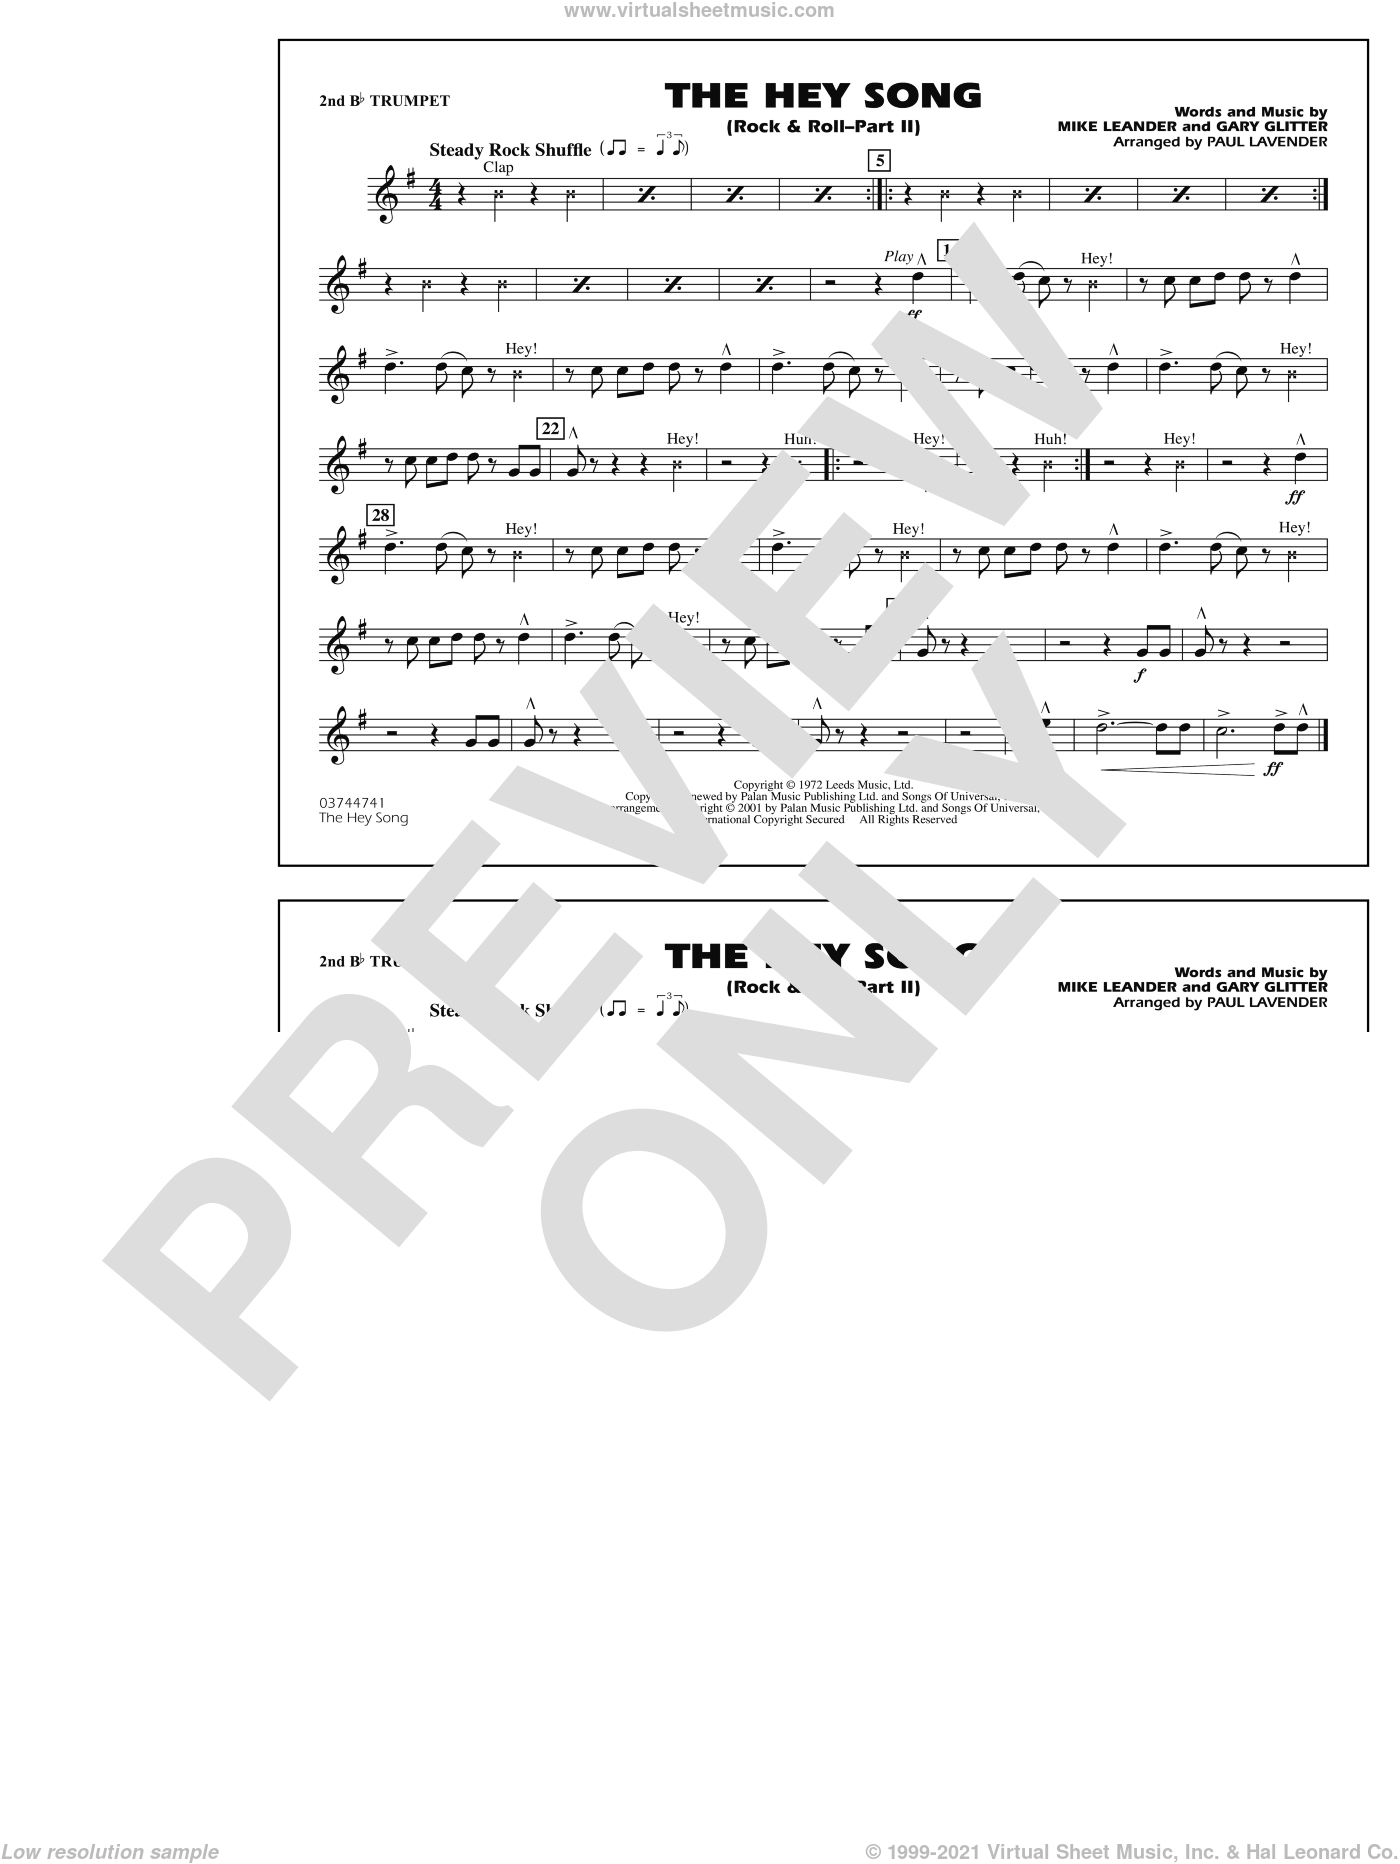 Rock and Roll, part ii (the hey song) sheet music for marching band (2nd Bb trumpet) by Mike Leander